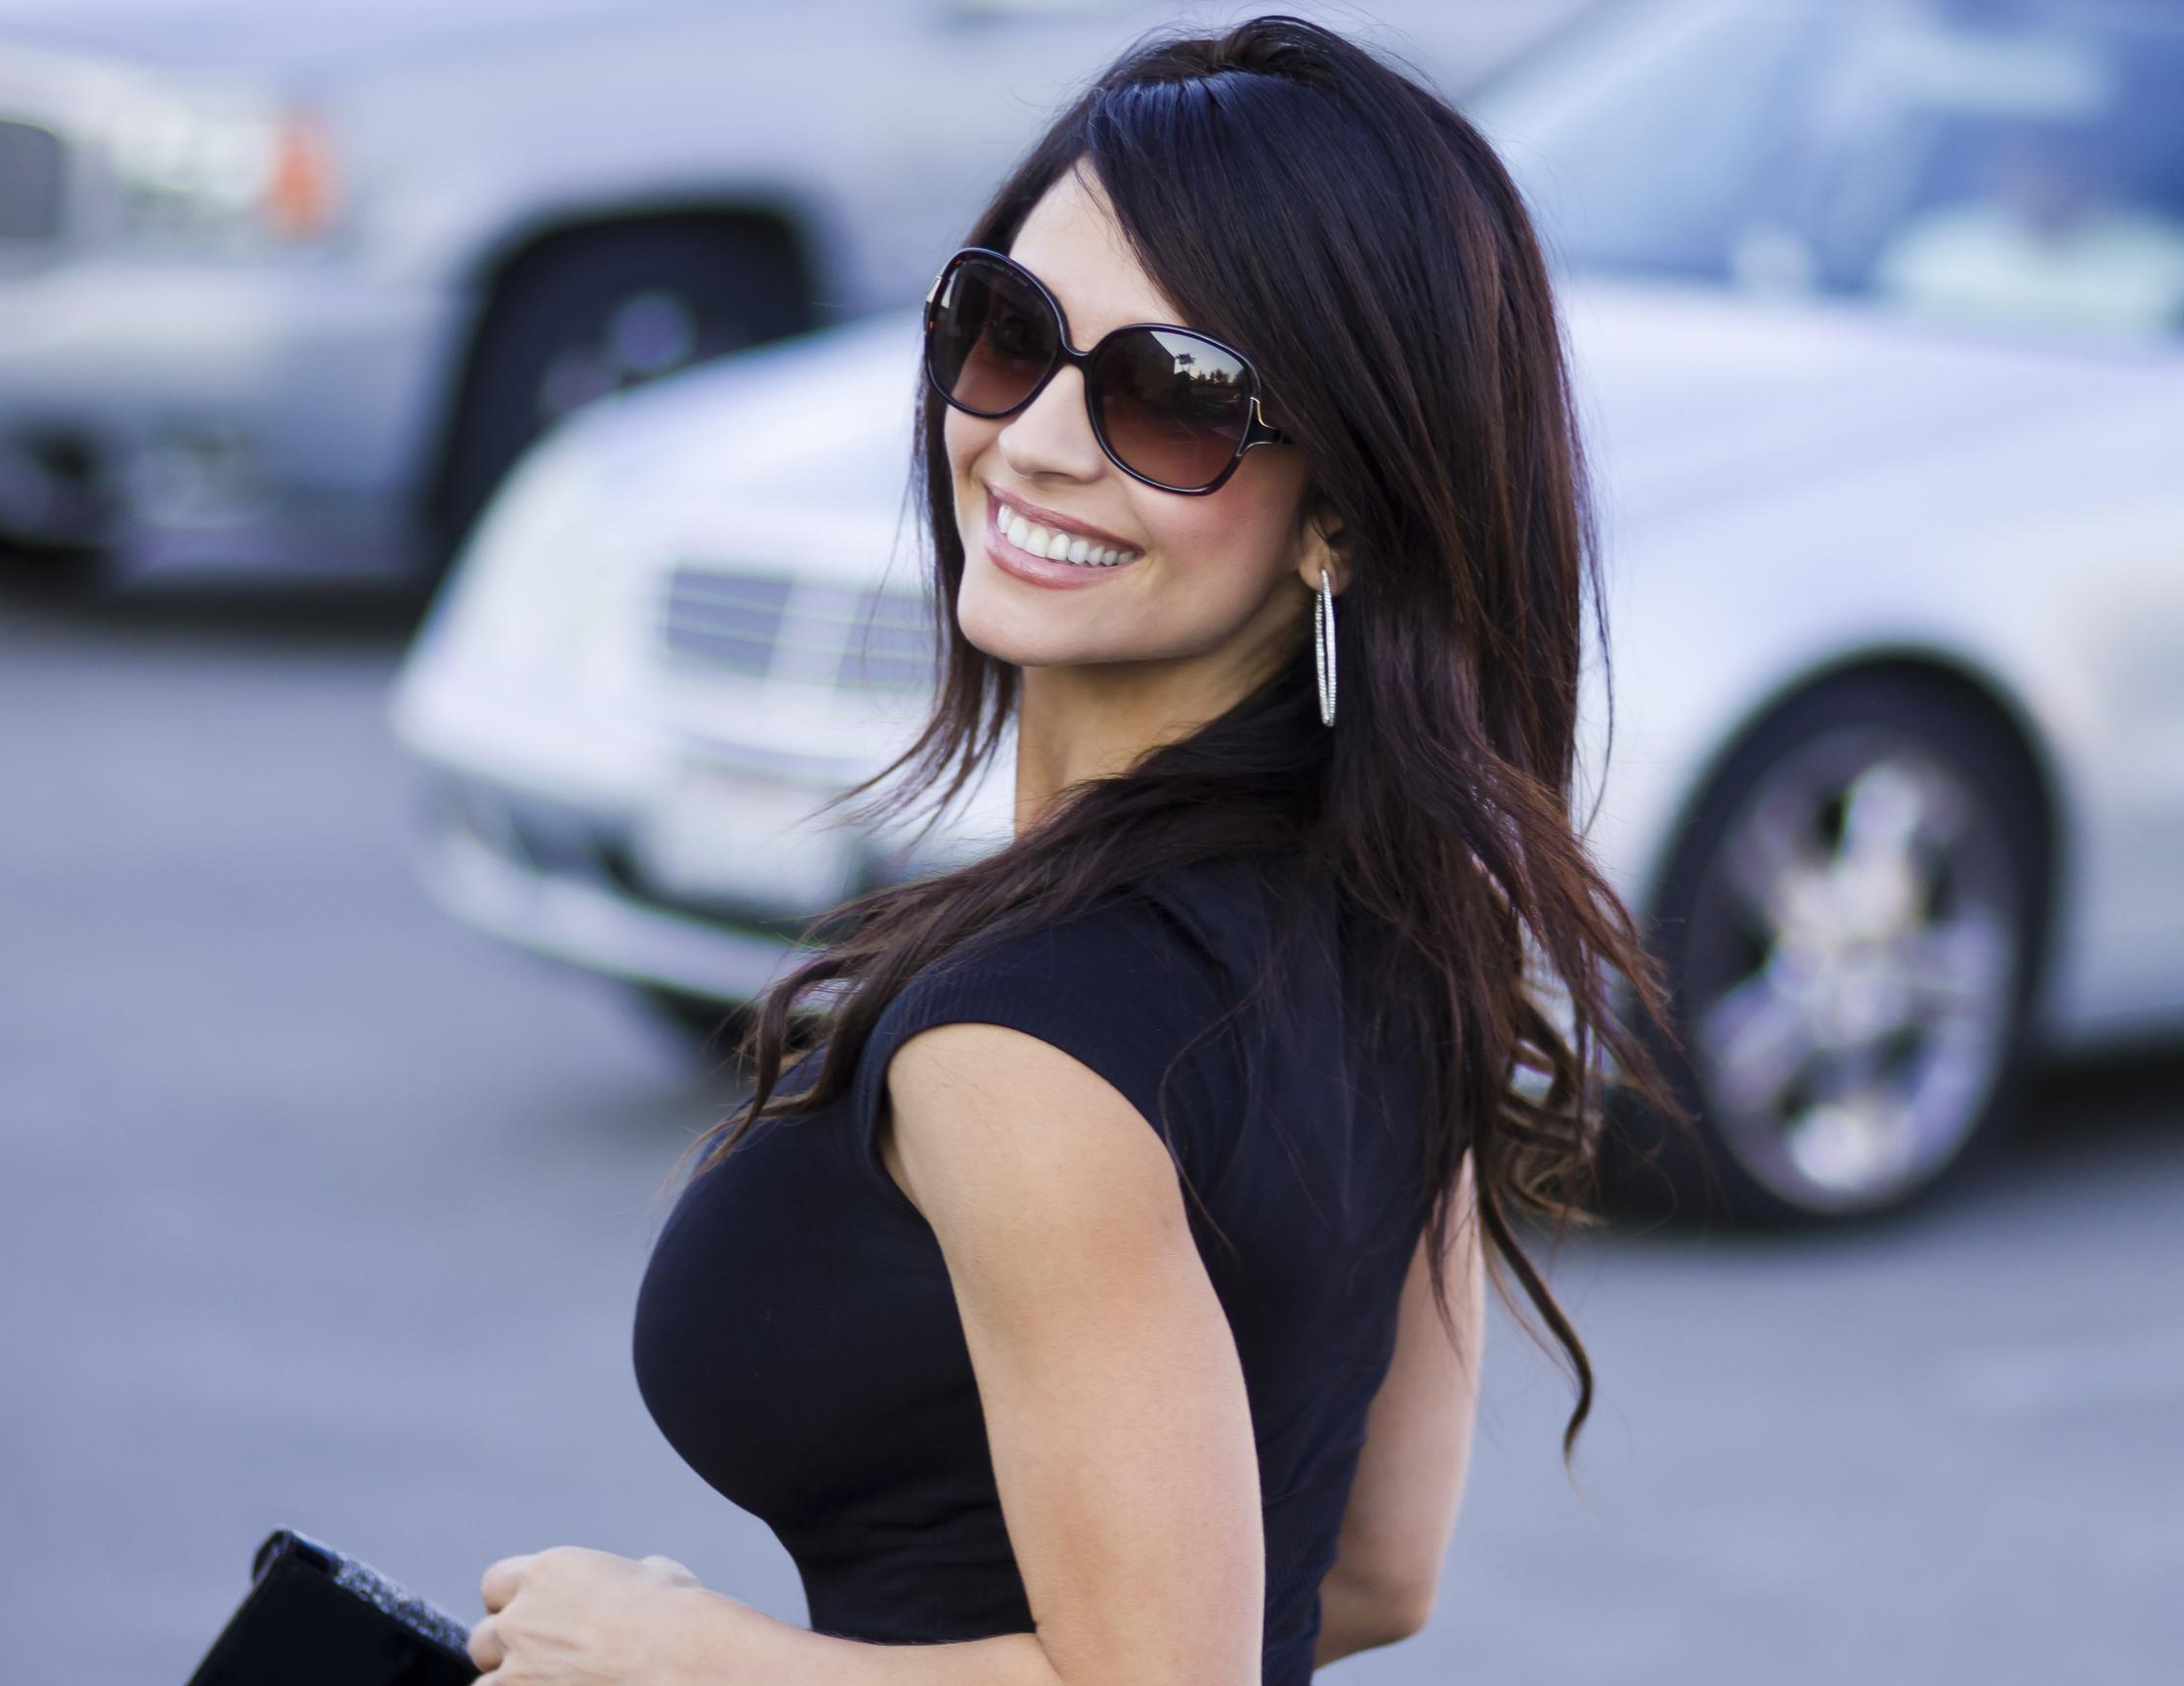 denise milani hd wallpaper full hd pictures